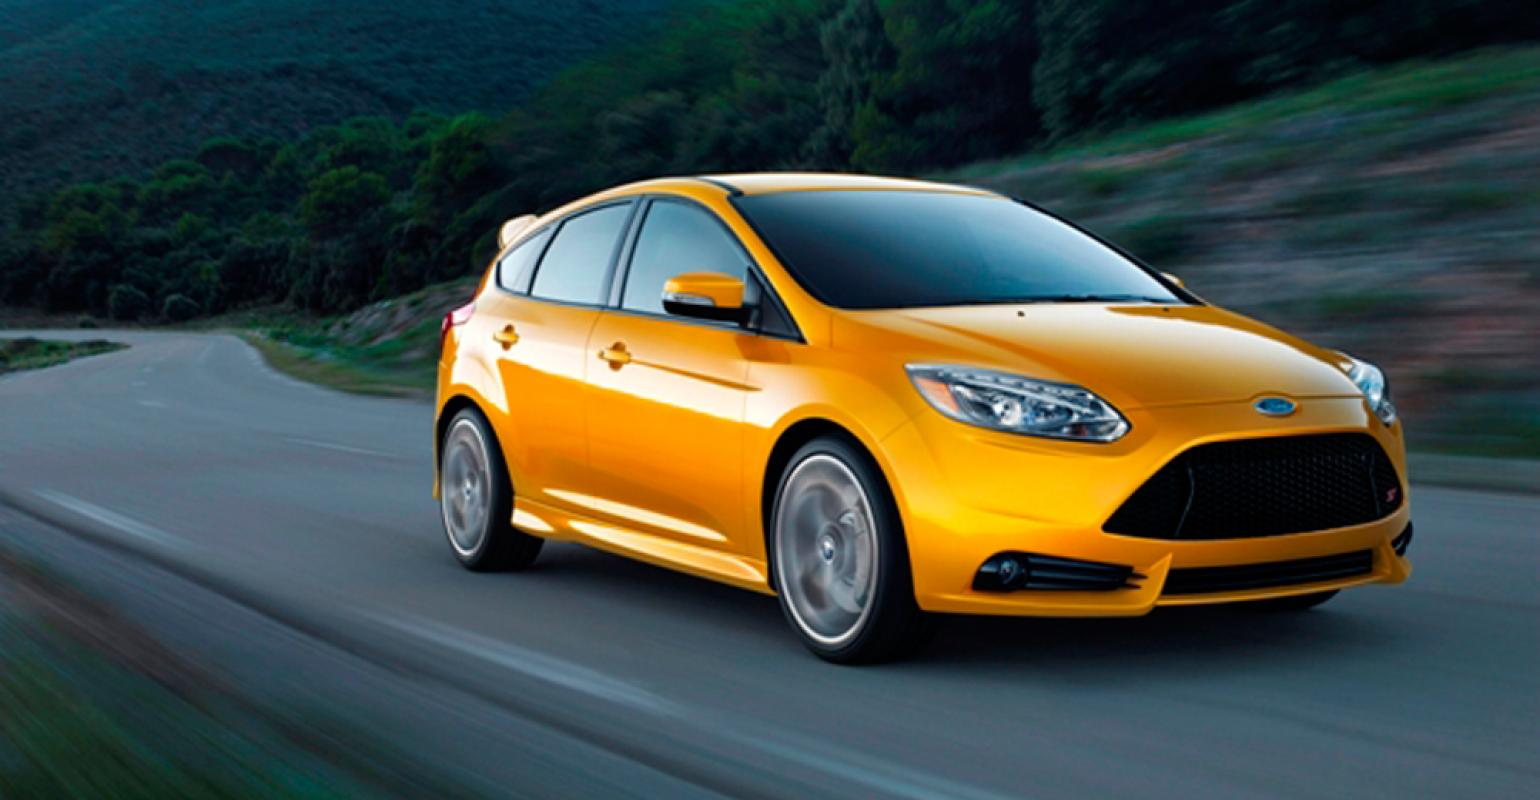 Rsquo13 focus st powered by 20l ecoboost 4cyl engine producing 252 hp